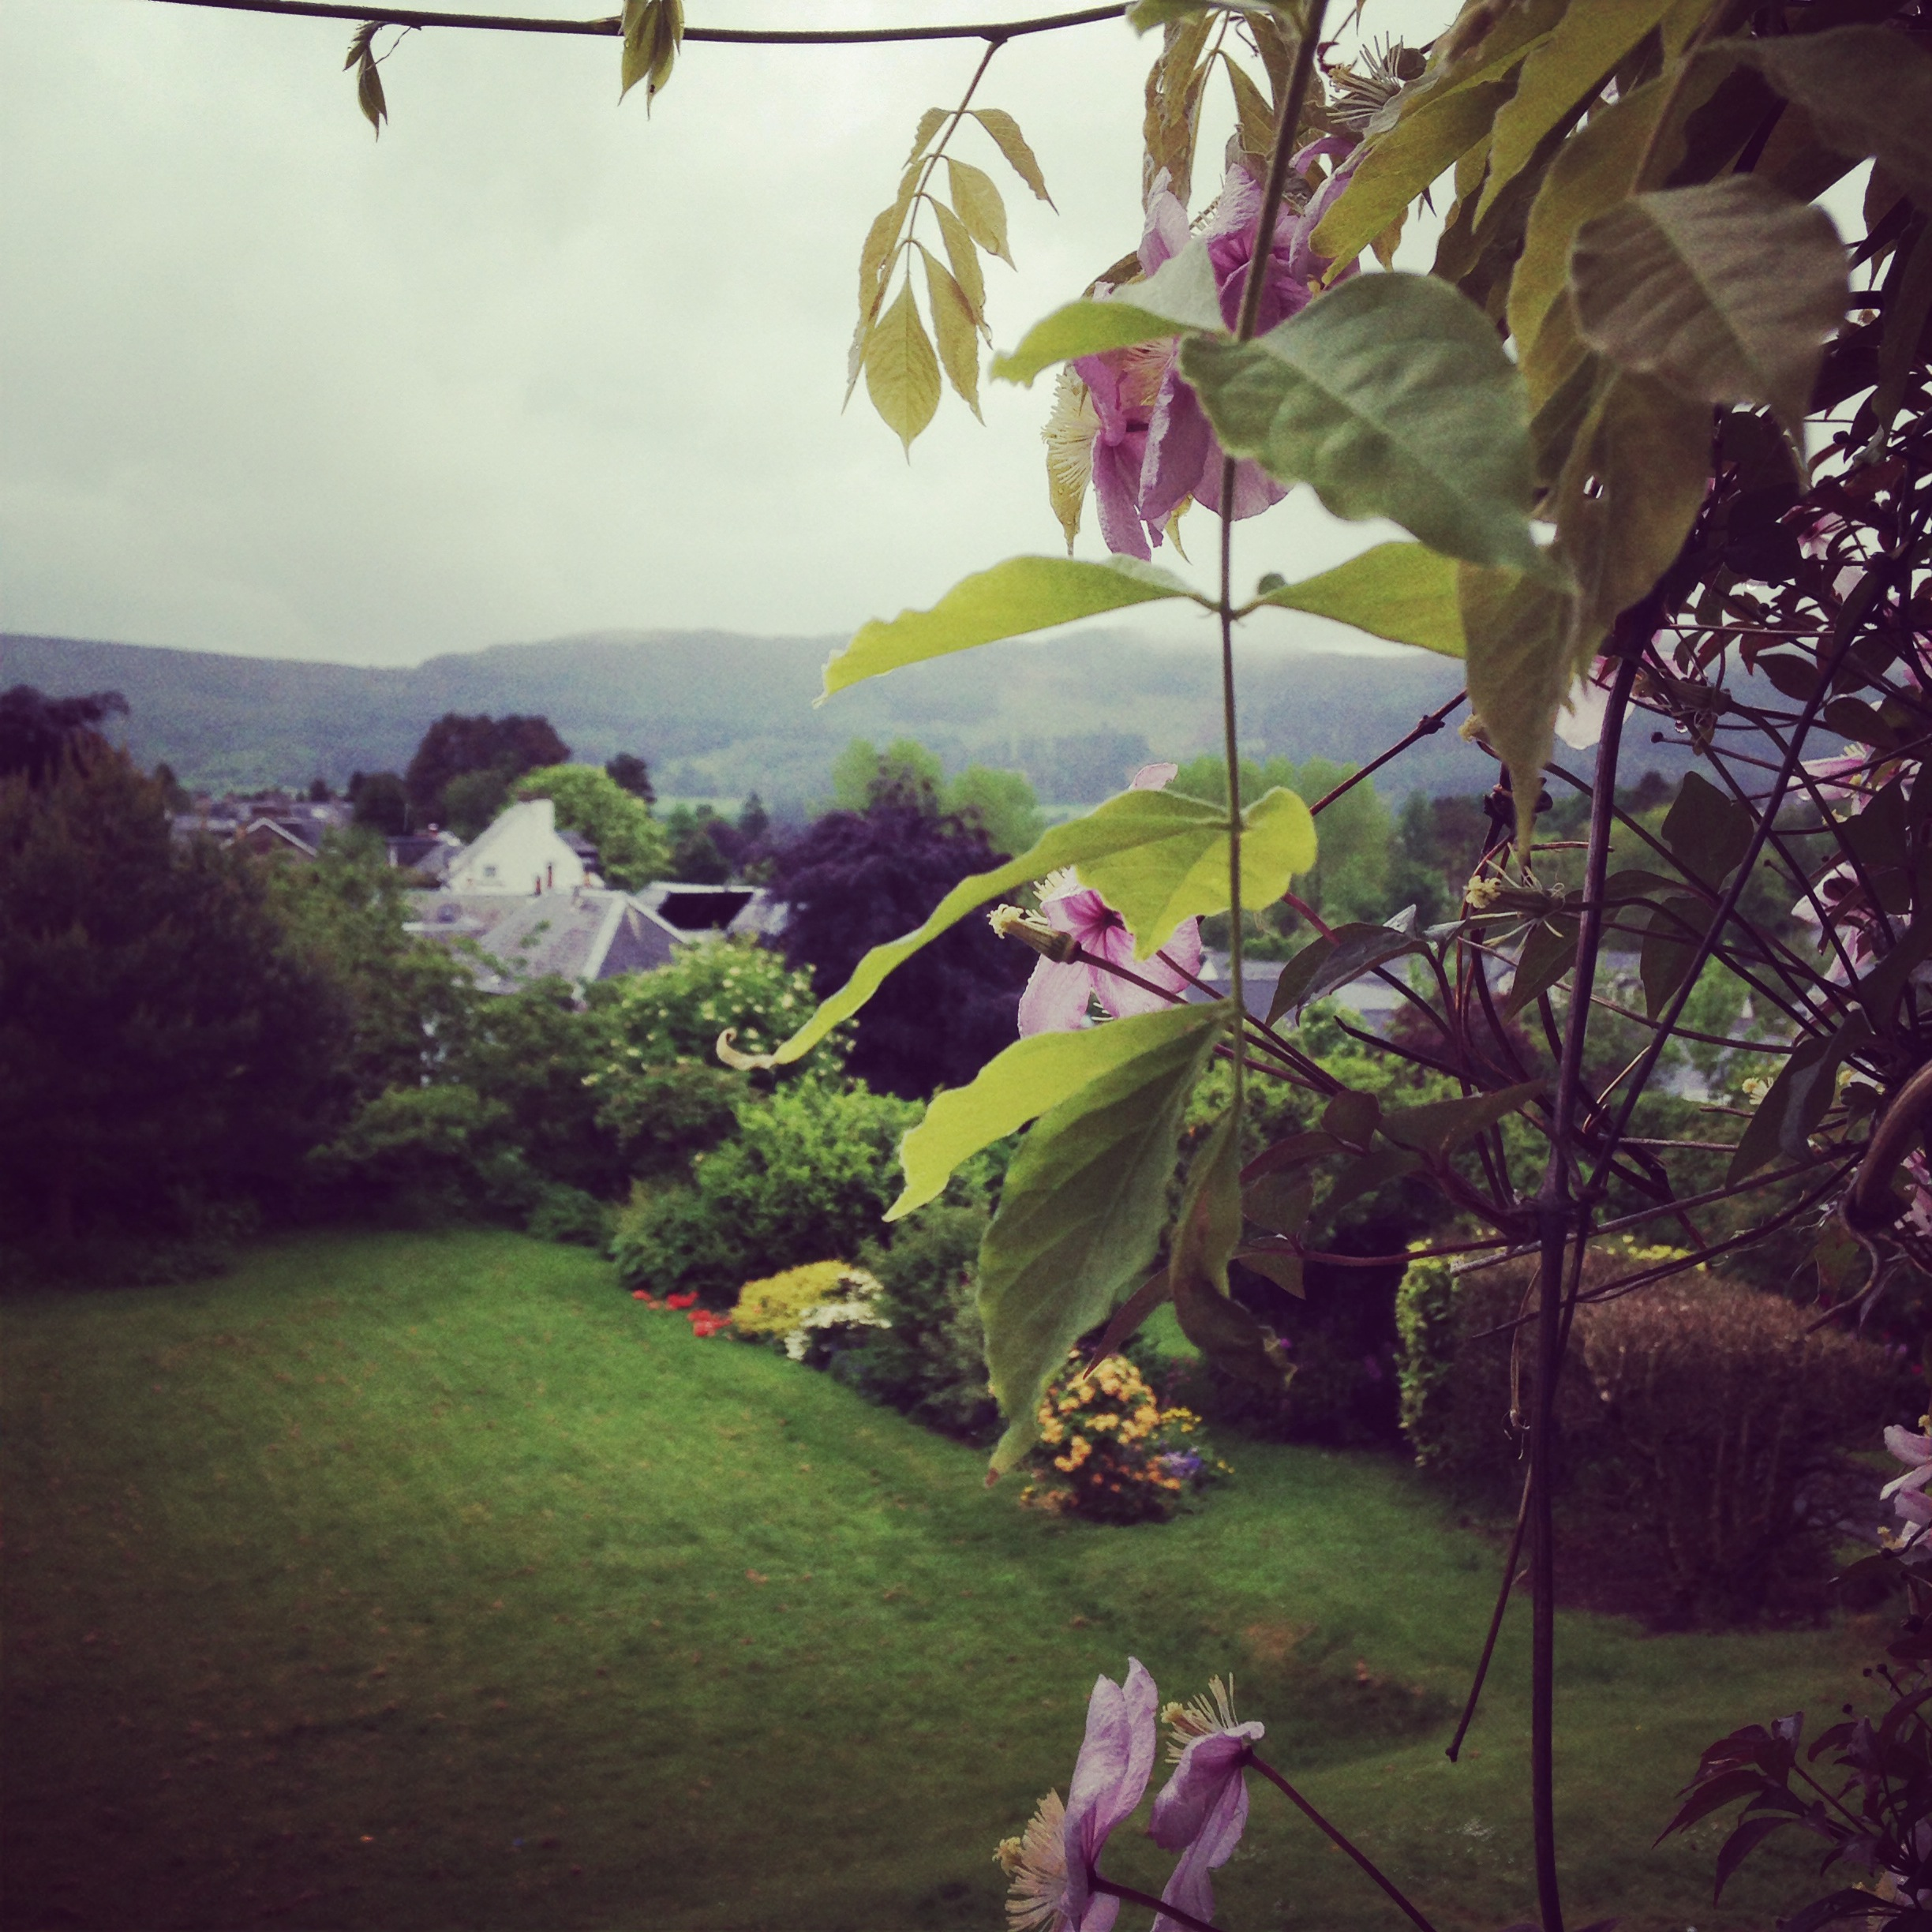 A lovely day spent in Pitlochry